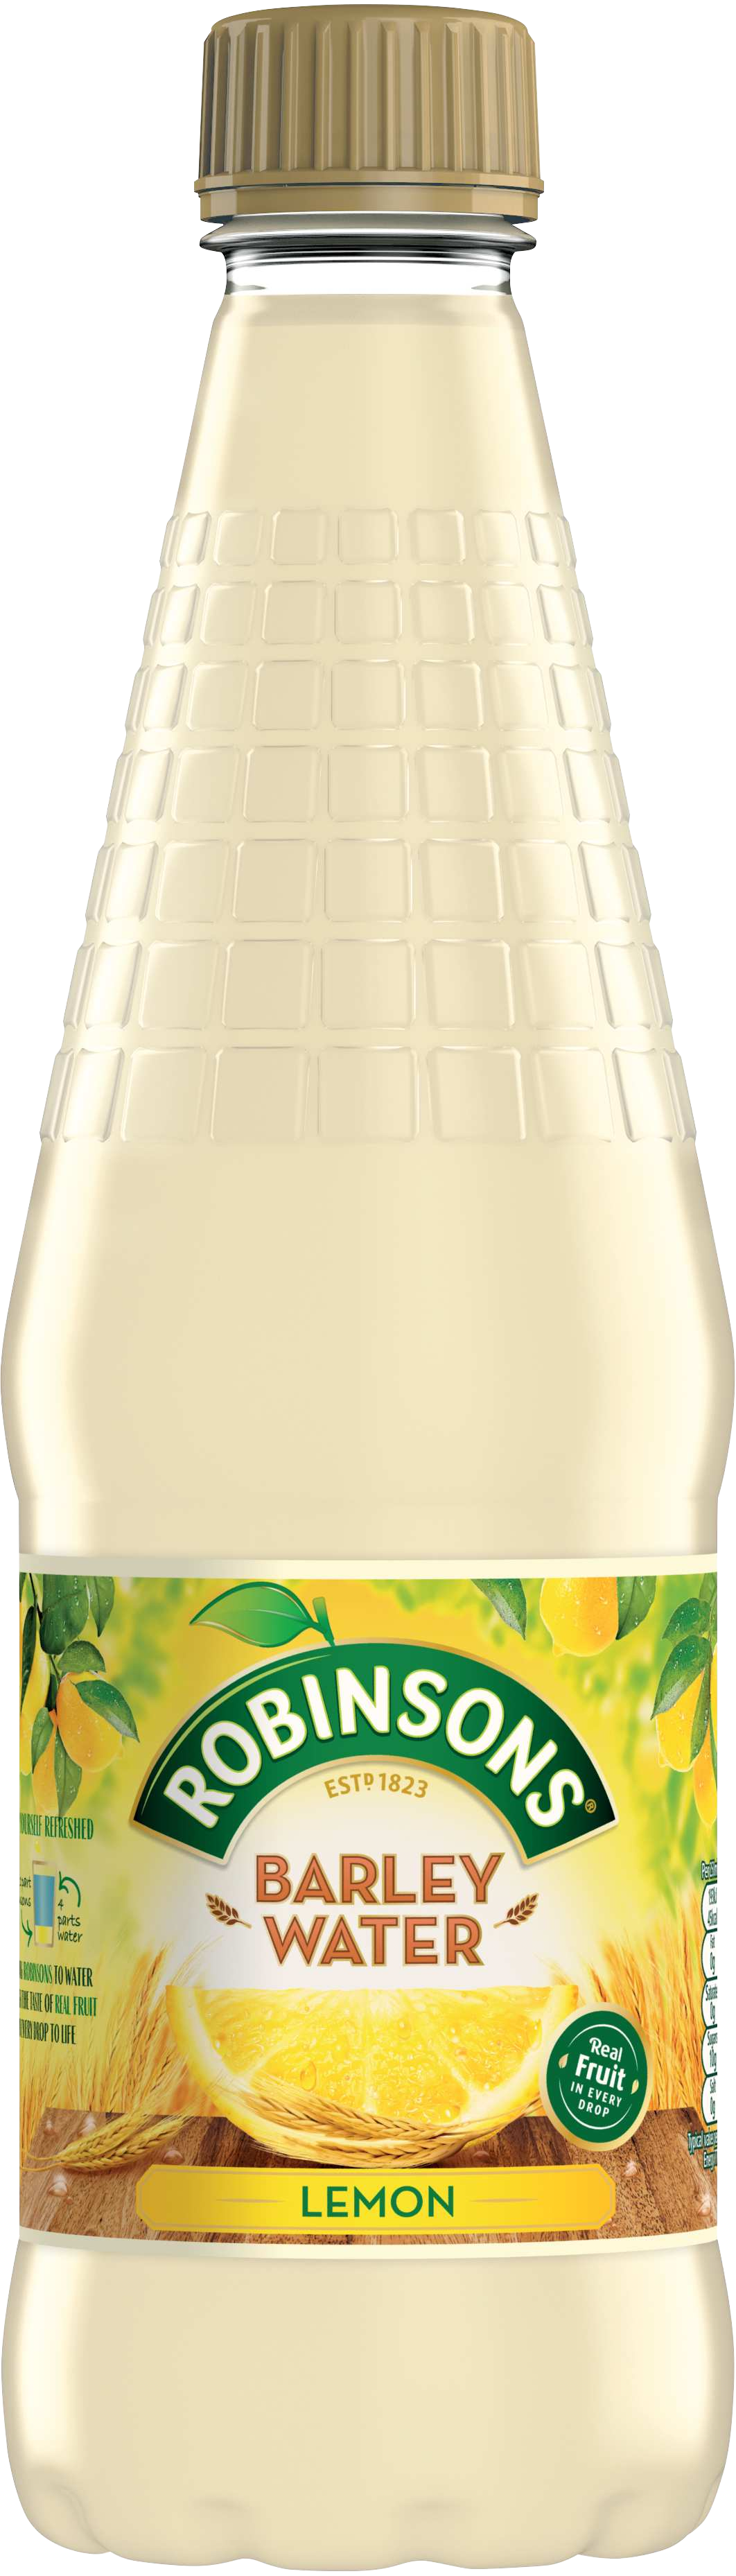 Original PNG-KJ41031_KSJ404391_Robs_Lemon_Barley_Water_PET_850ml.png